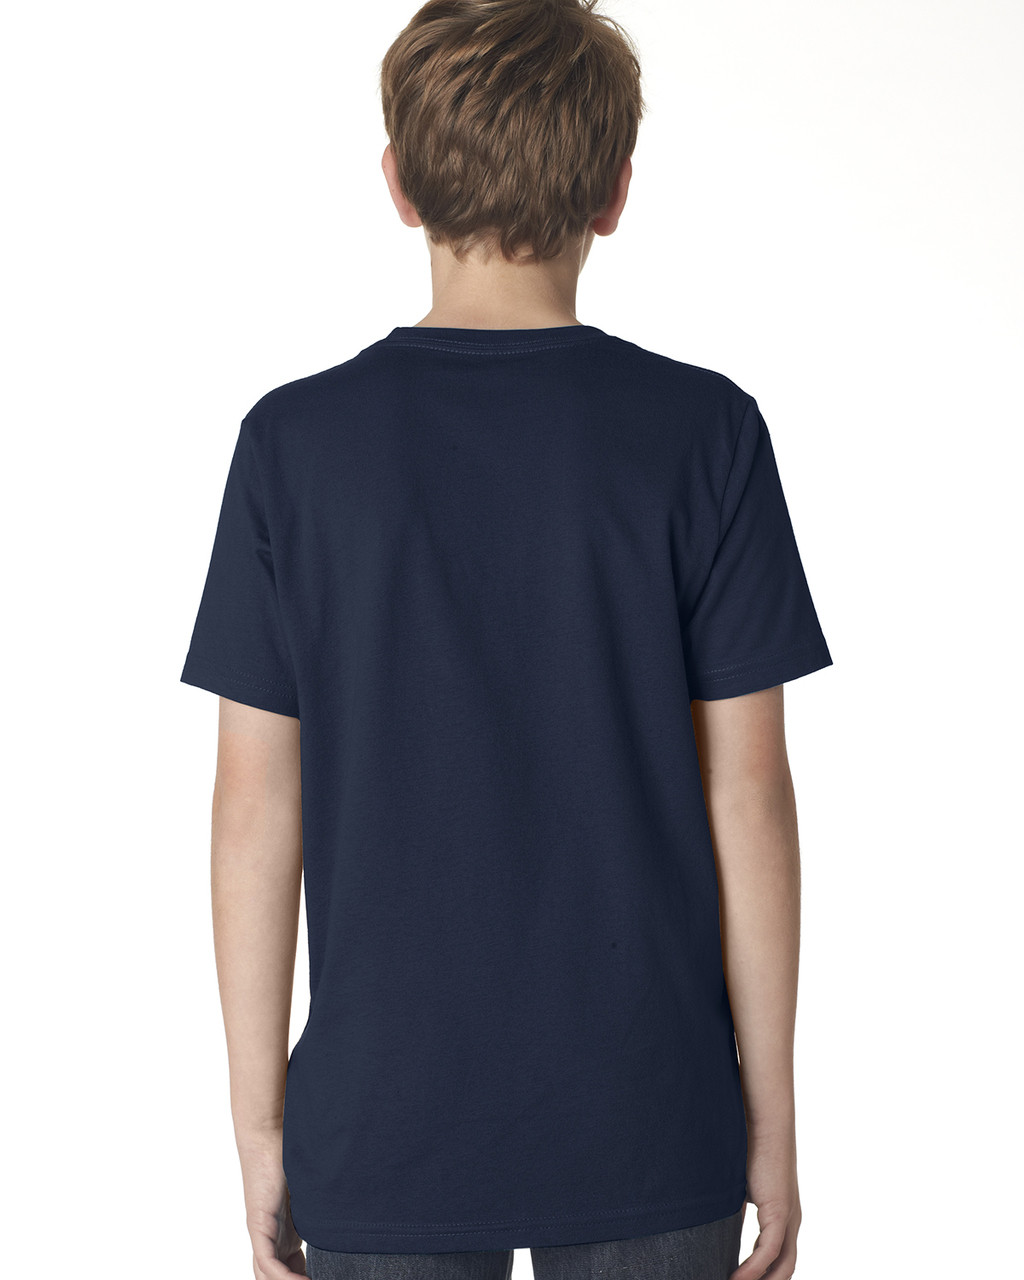 Midnight Navy, back 3310 Next Level Boys' Premium Crew Tee | Blankclothing.ca